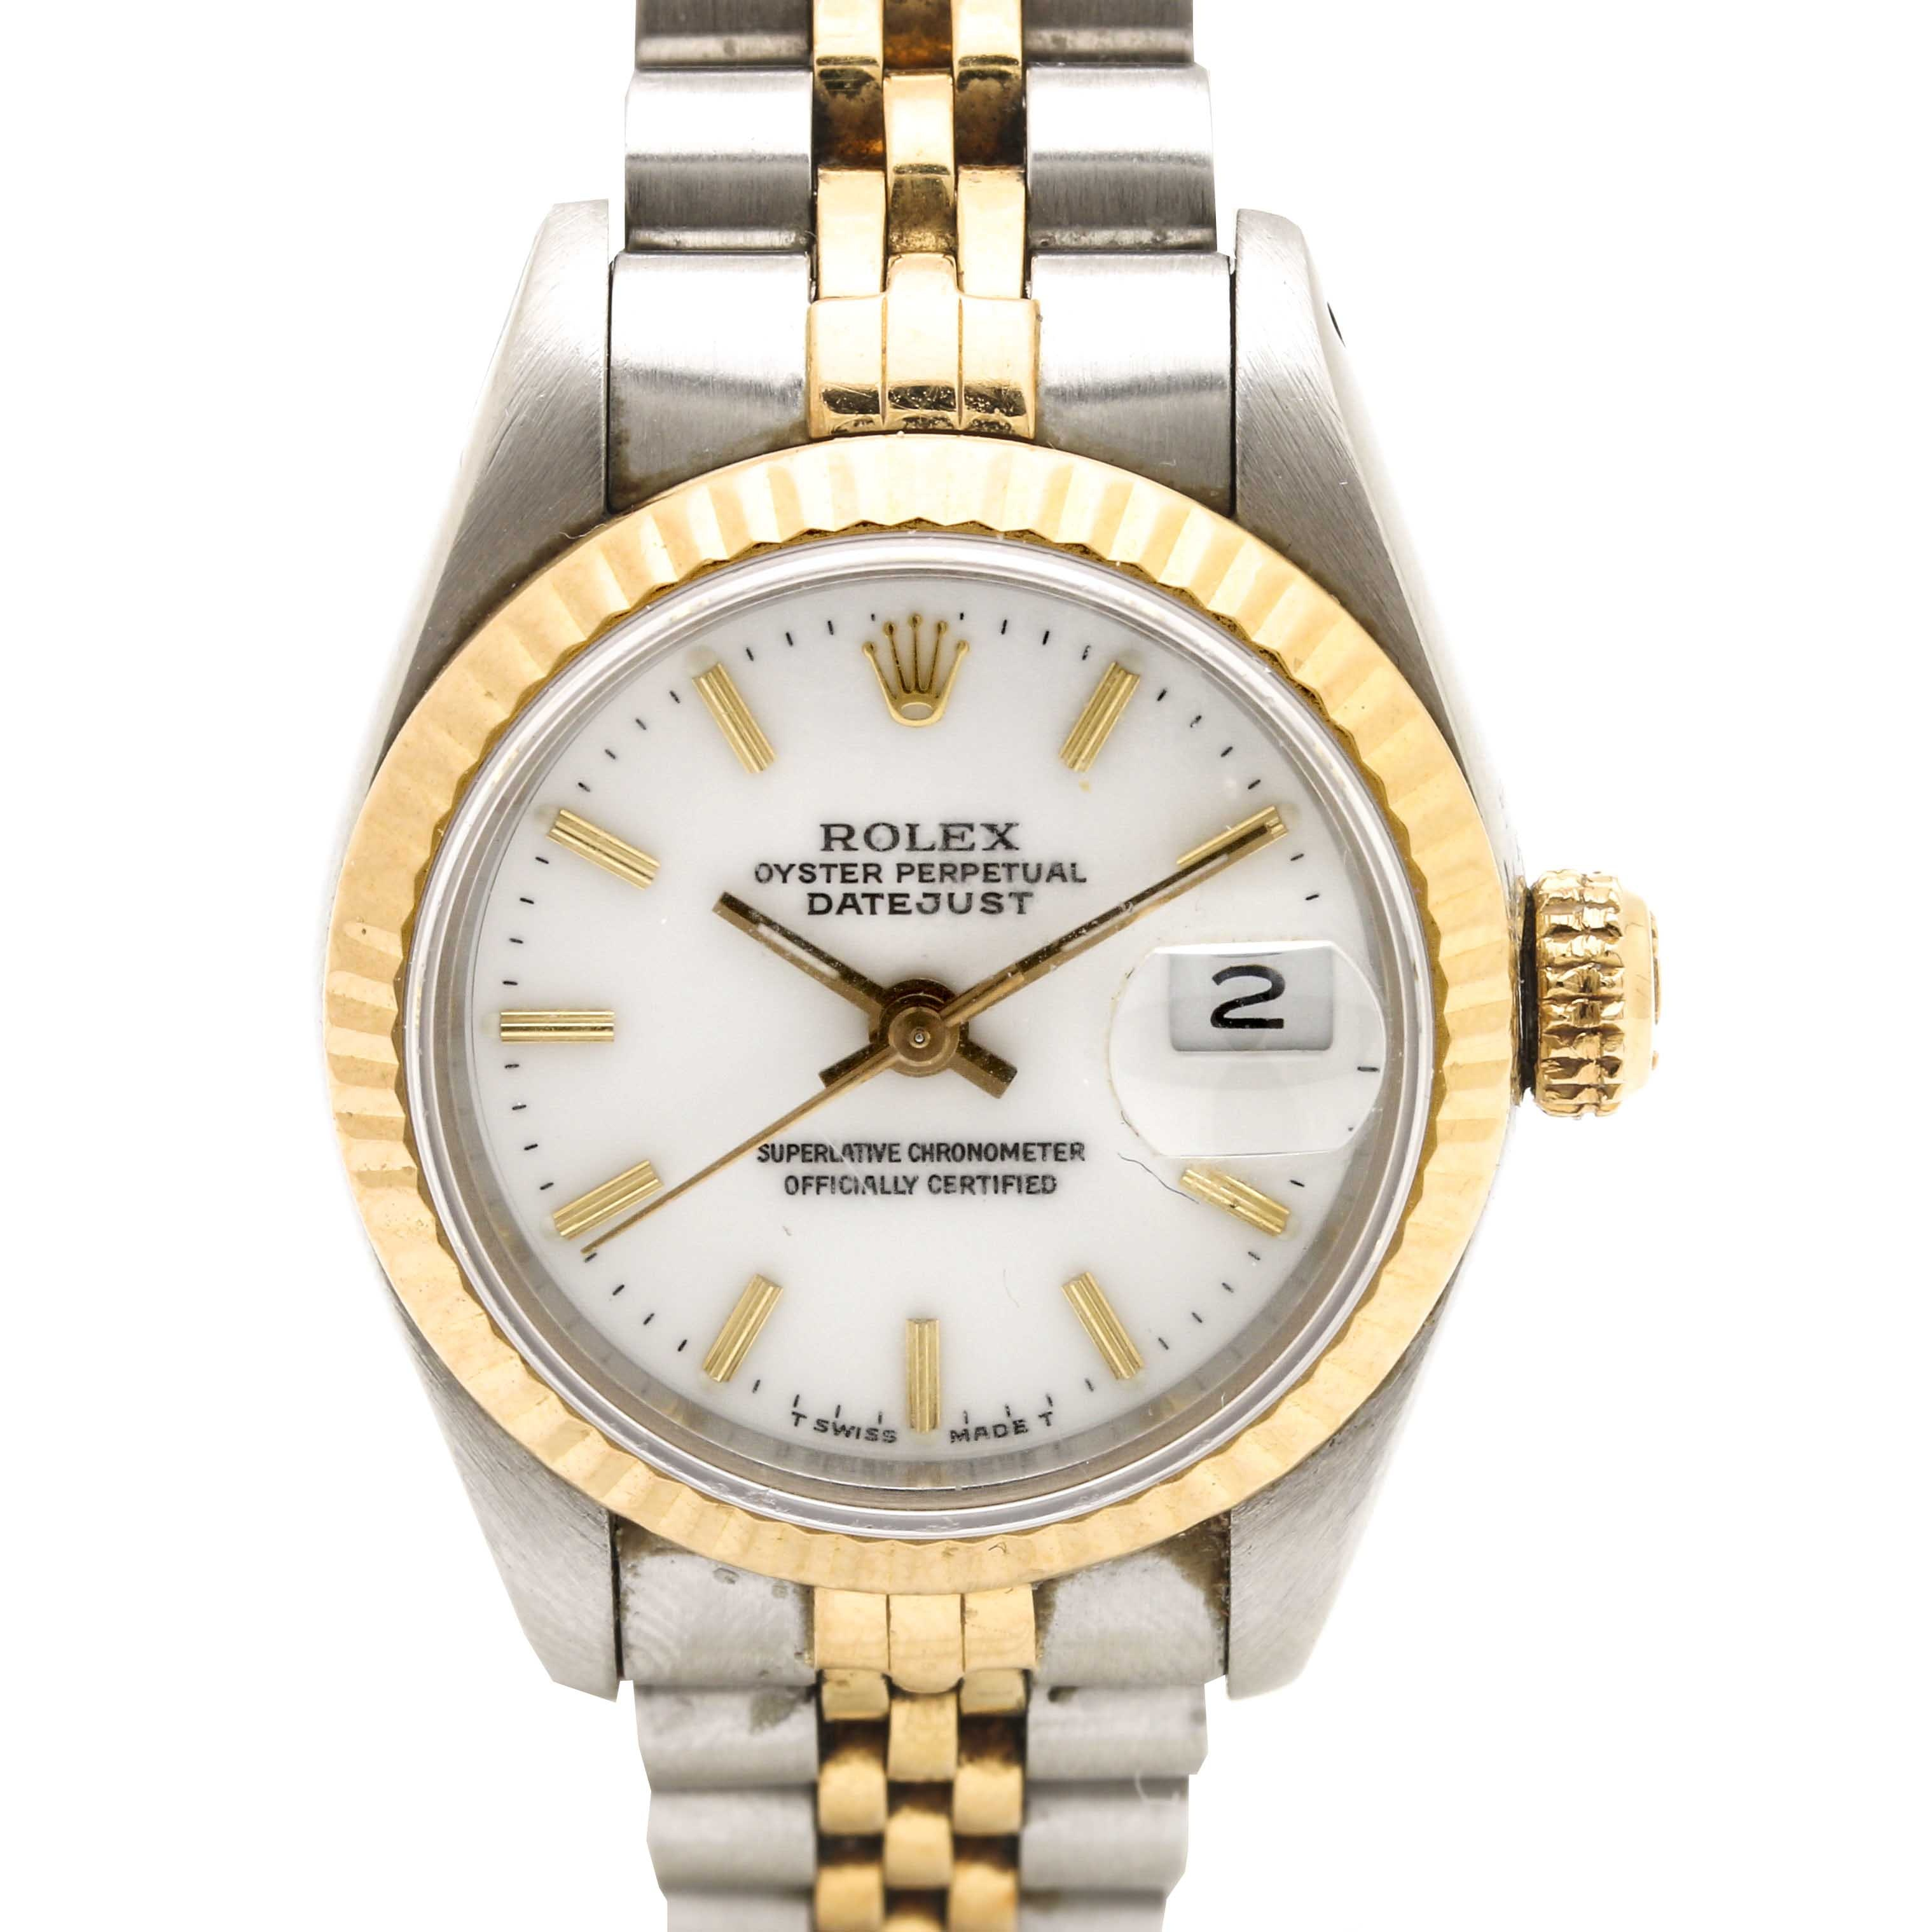 Rolex Oyster Perpetual Datejust 18K Yellow Gold and Stainless Steel Wristwatch